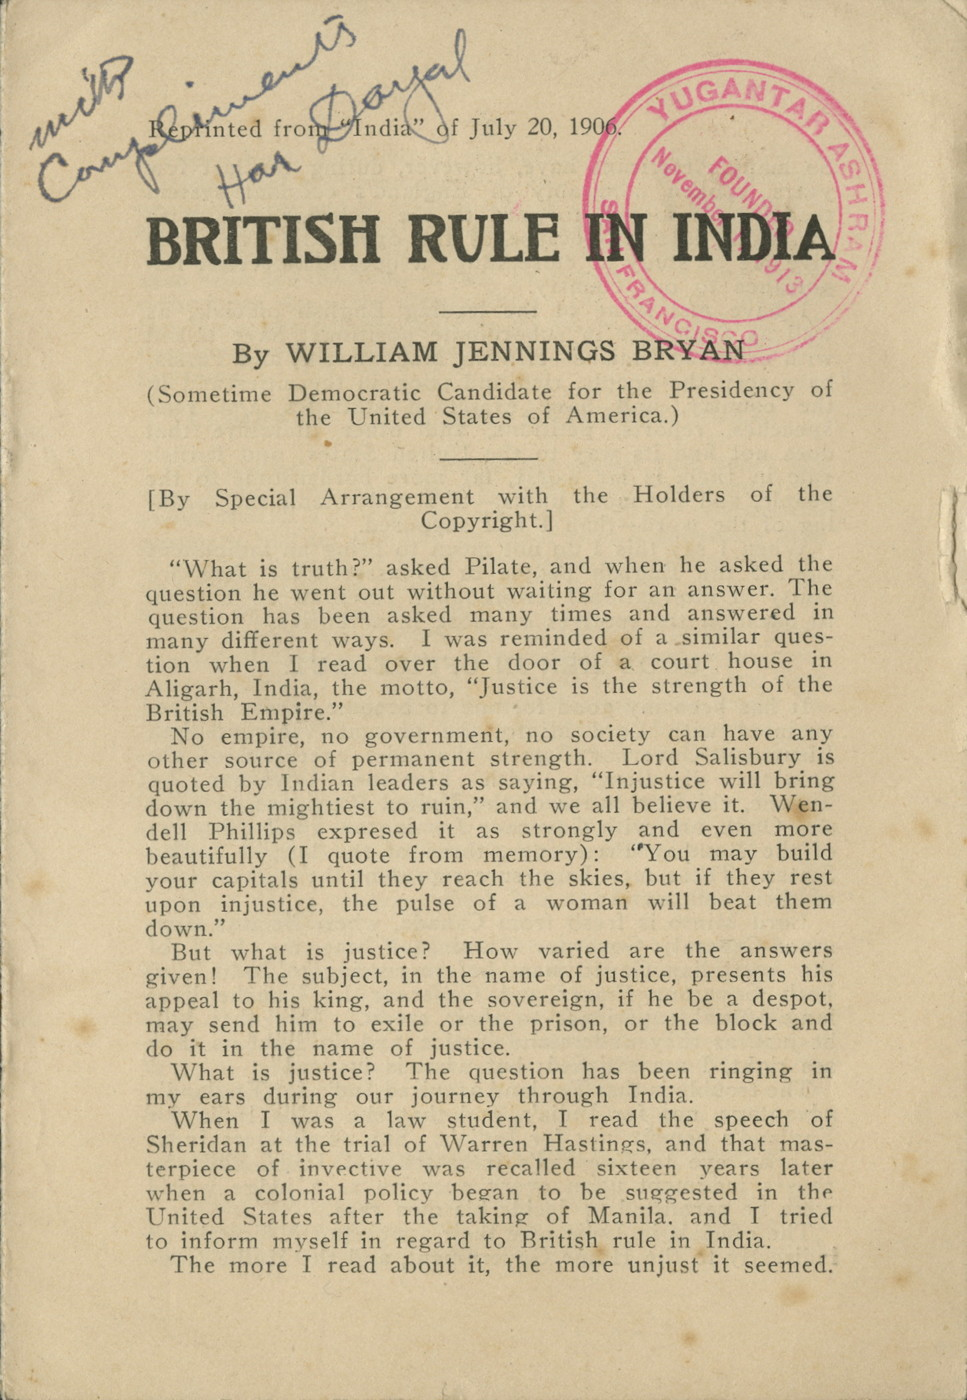 british rule in india The very idea of the british raj—the british rule over india—seems inexplicable today consider the fact that indian written history stretches back almost 4,000 years, to the civilization centers of the indus valley culture at harappa and mohenjo-daro also, by 1850, india had a population of at .